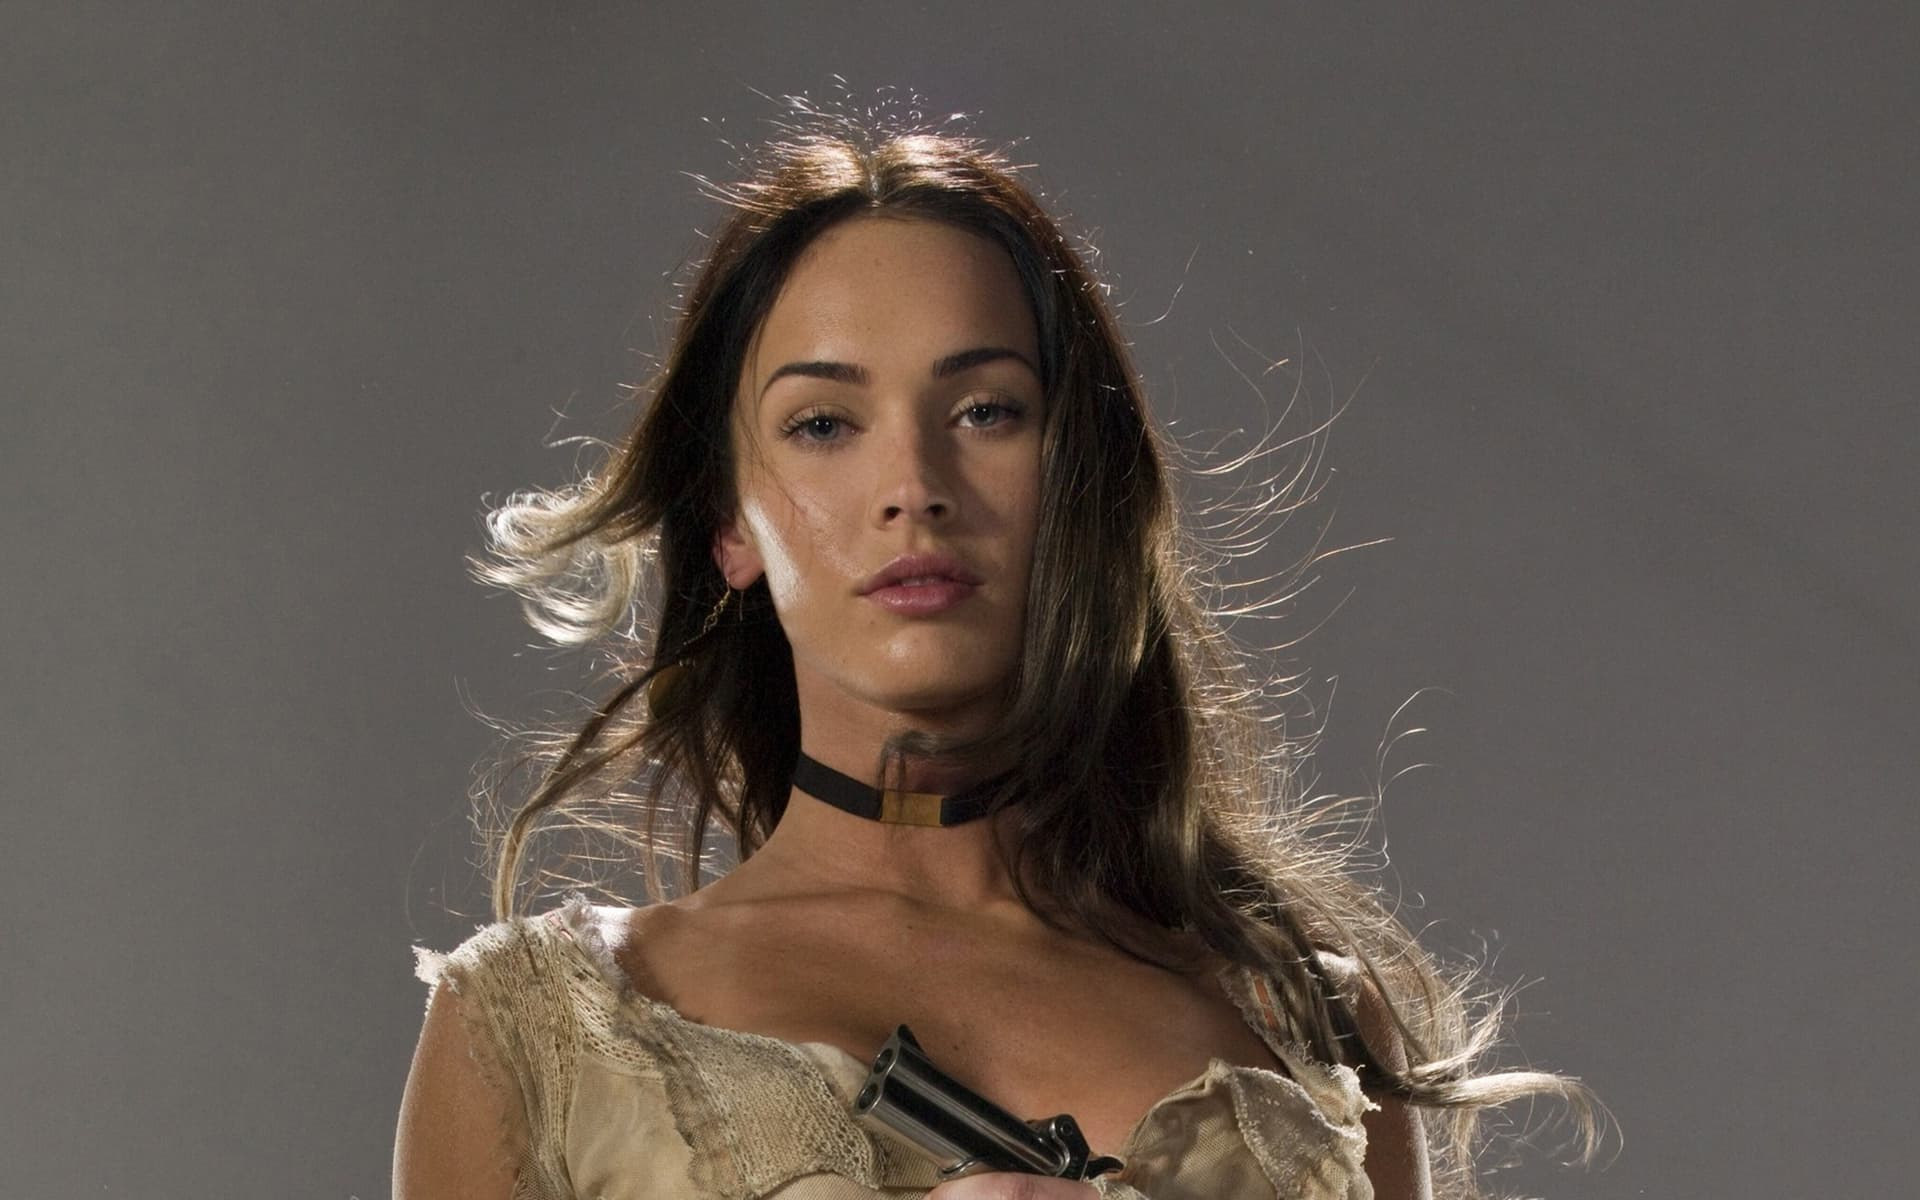 Online Wallpapers Shop Megan Fox Wallpapers: 40+ Megan Fox Wallpapers High Quality Download